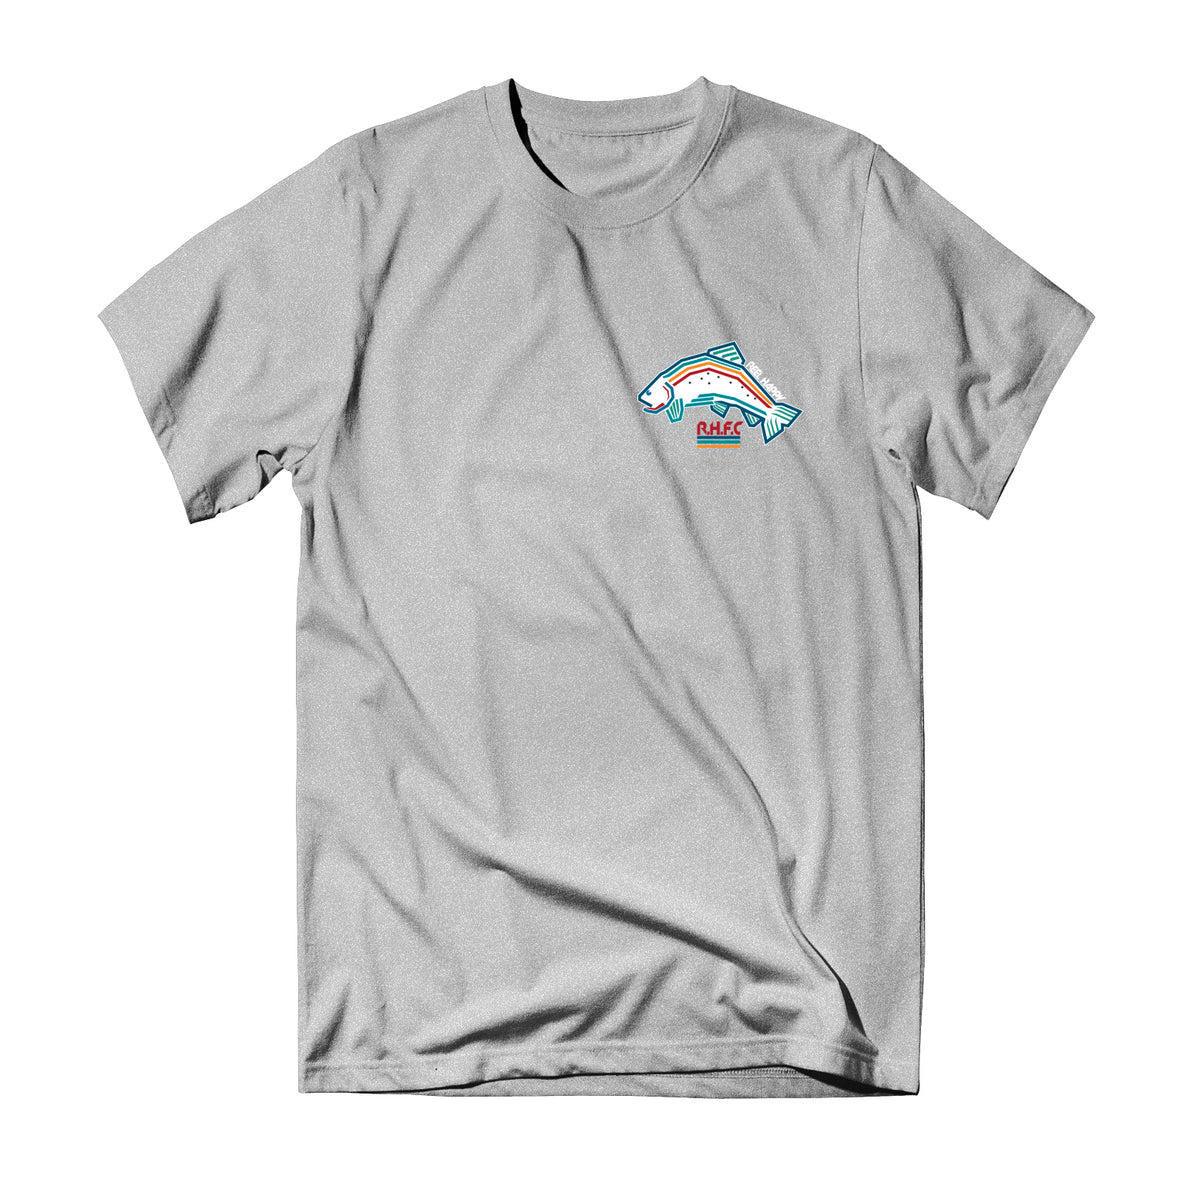 Trout Lines Tee - Heather Grey - Reel Happy Co